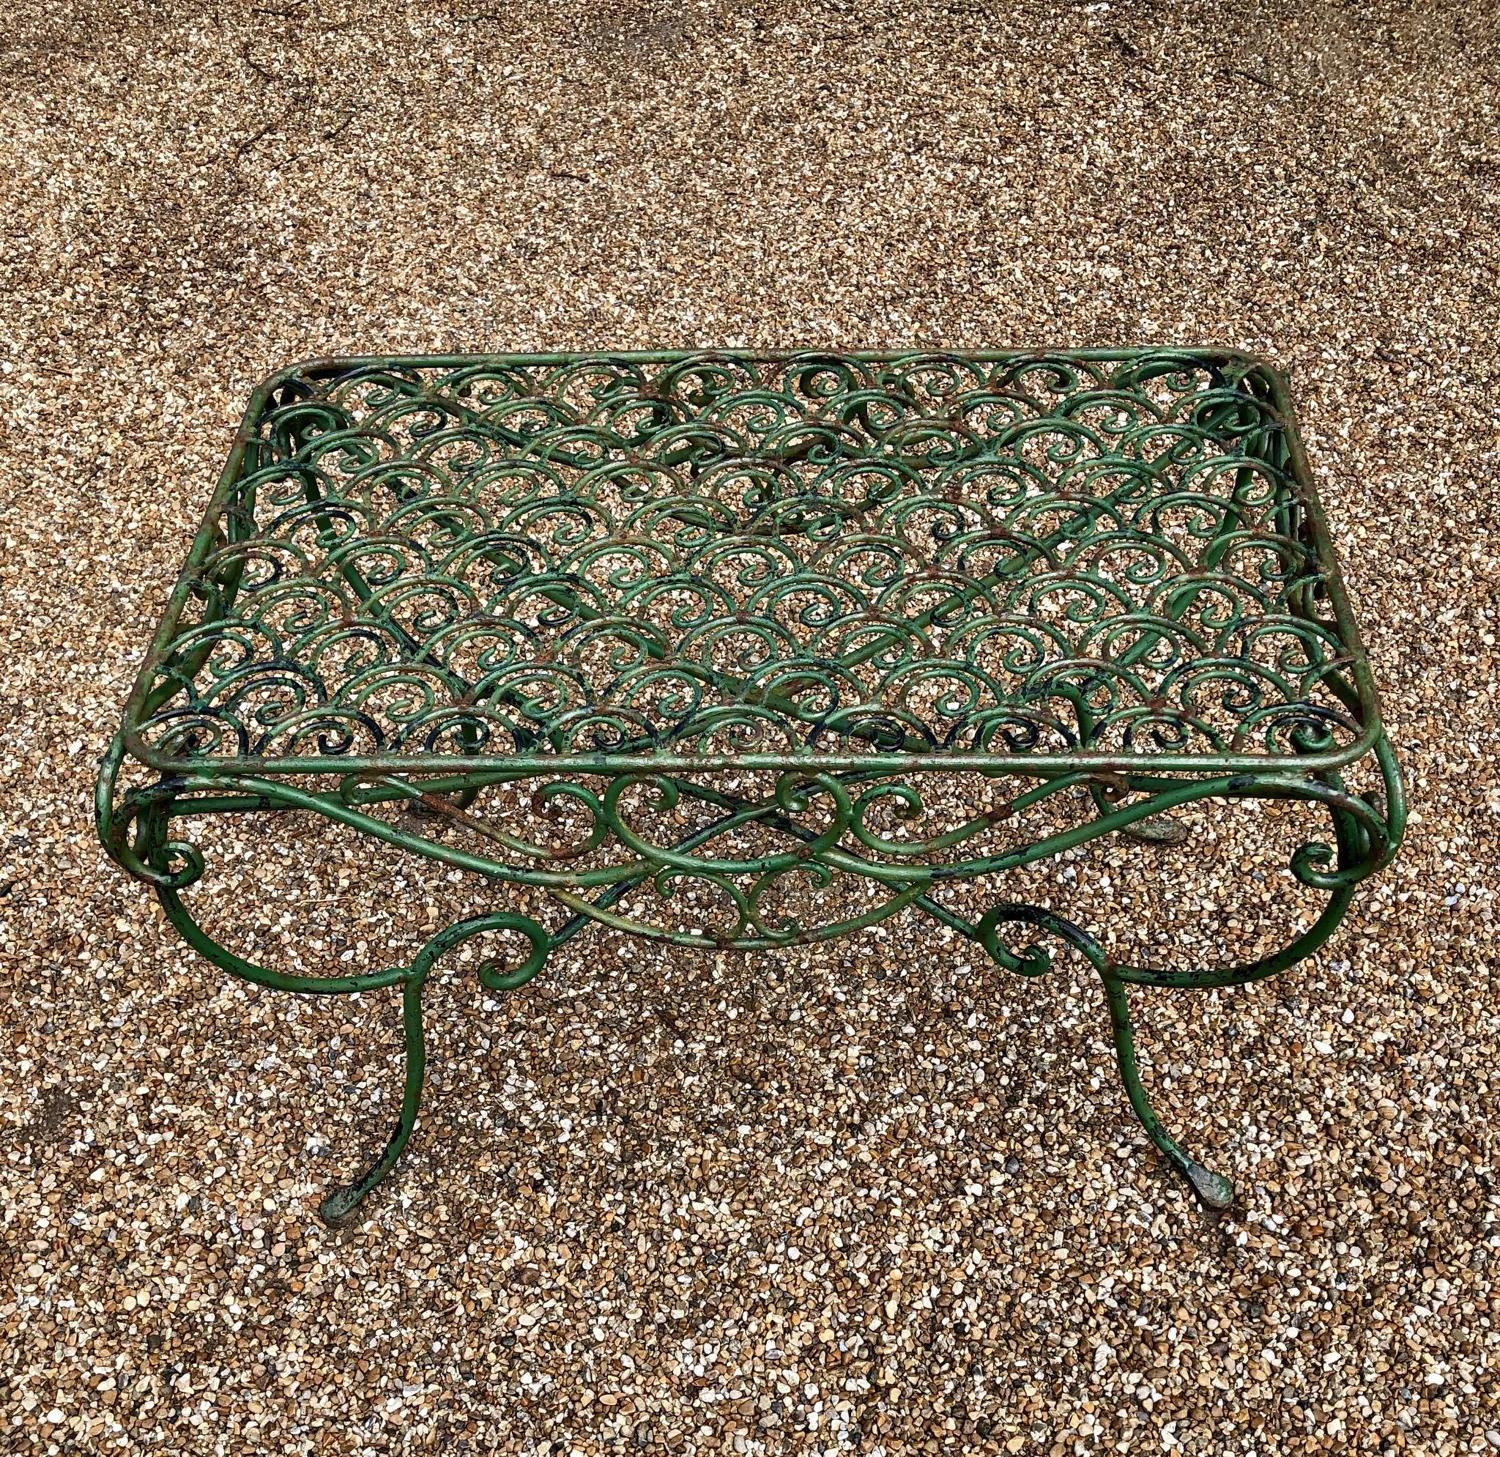 A Wrought Iron low table